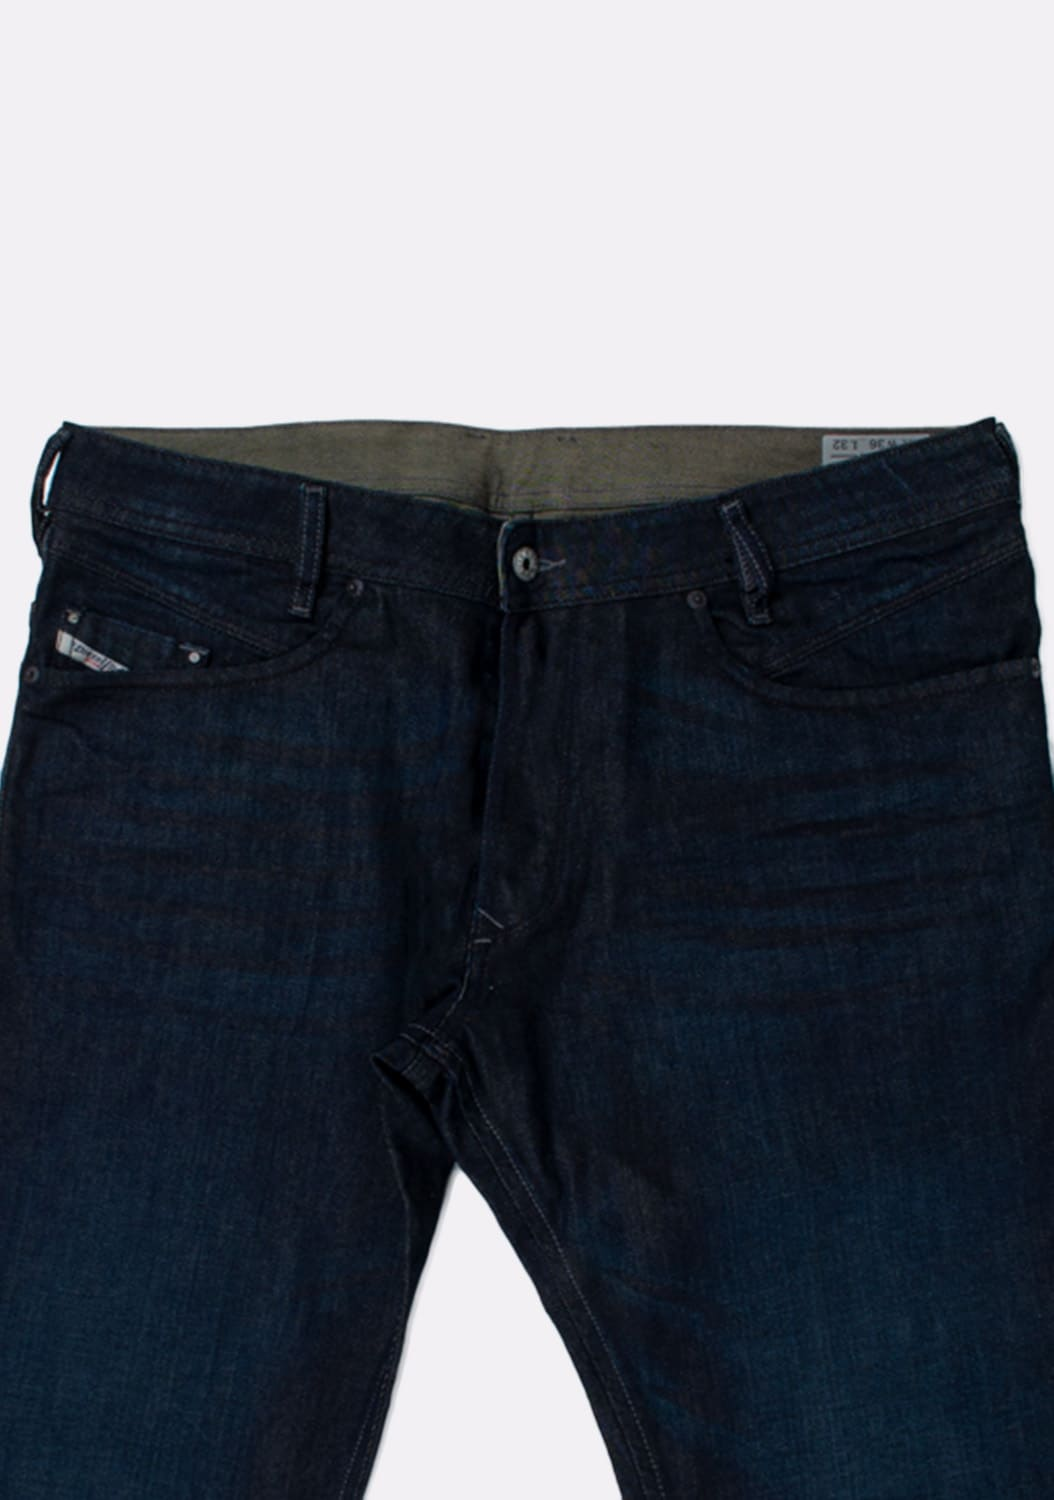 Diesel-Jeans-Iakop-0845G-Stretch-Regular-Slim-Tapered-dydis-36-32 (3)